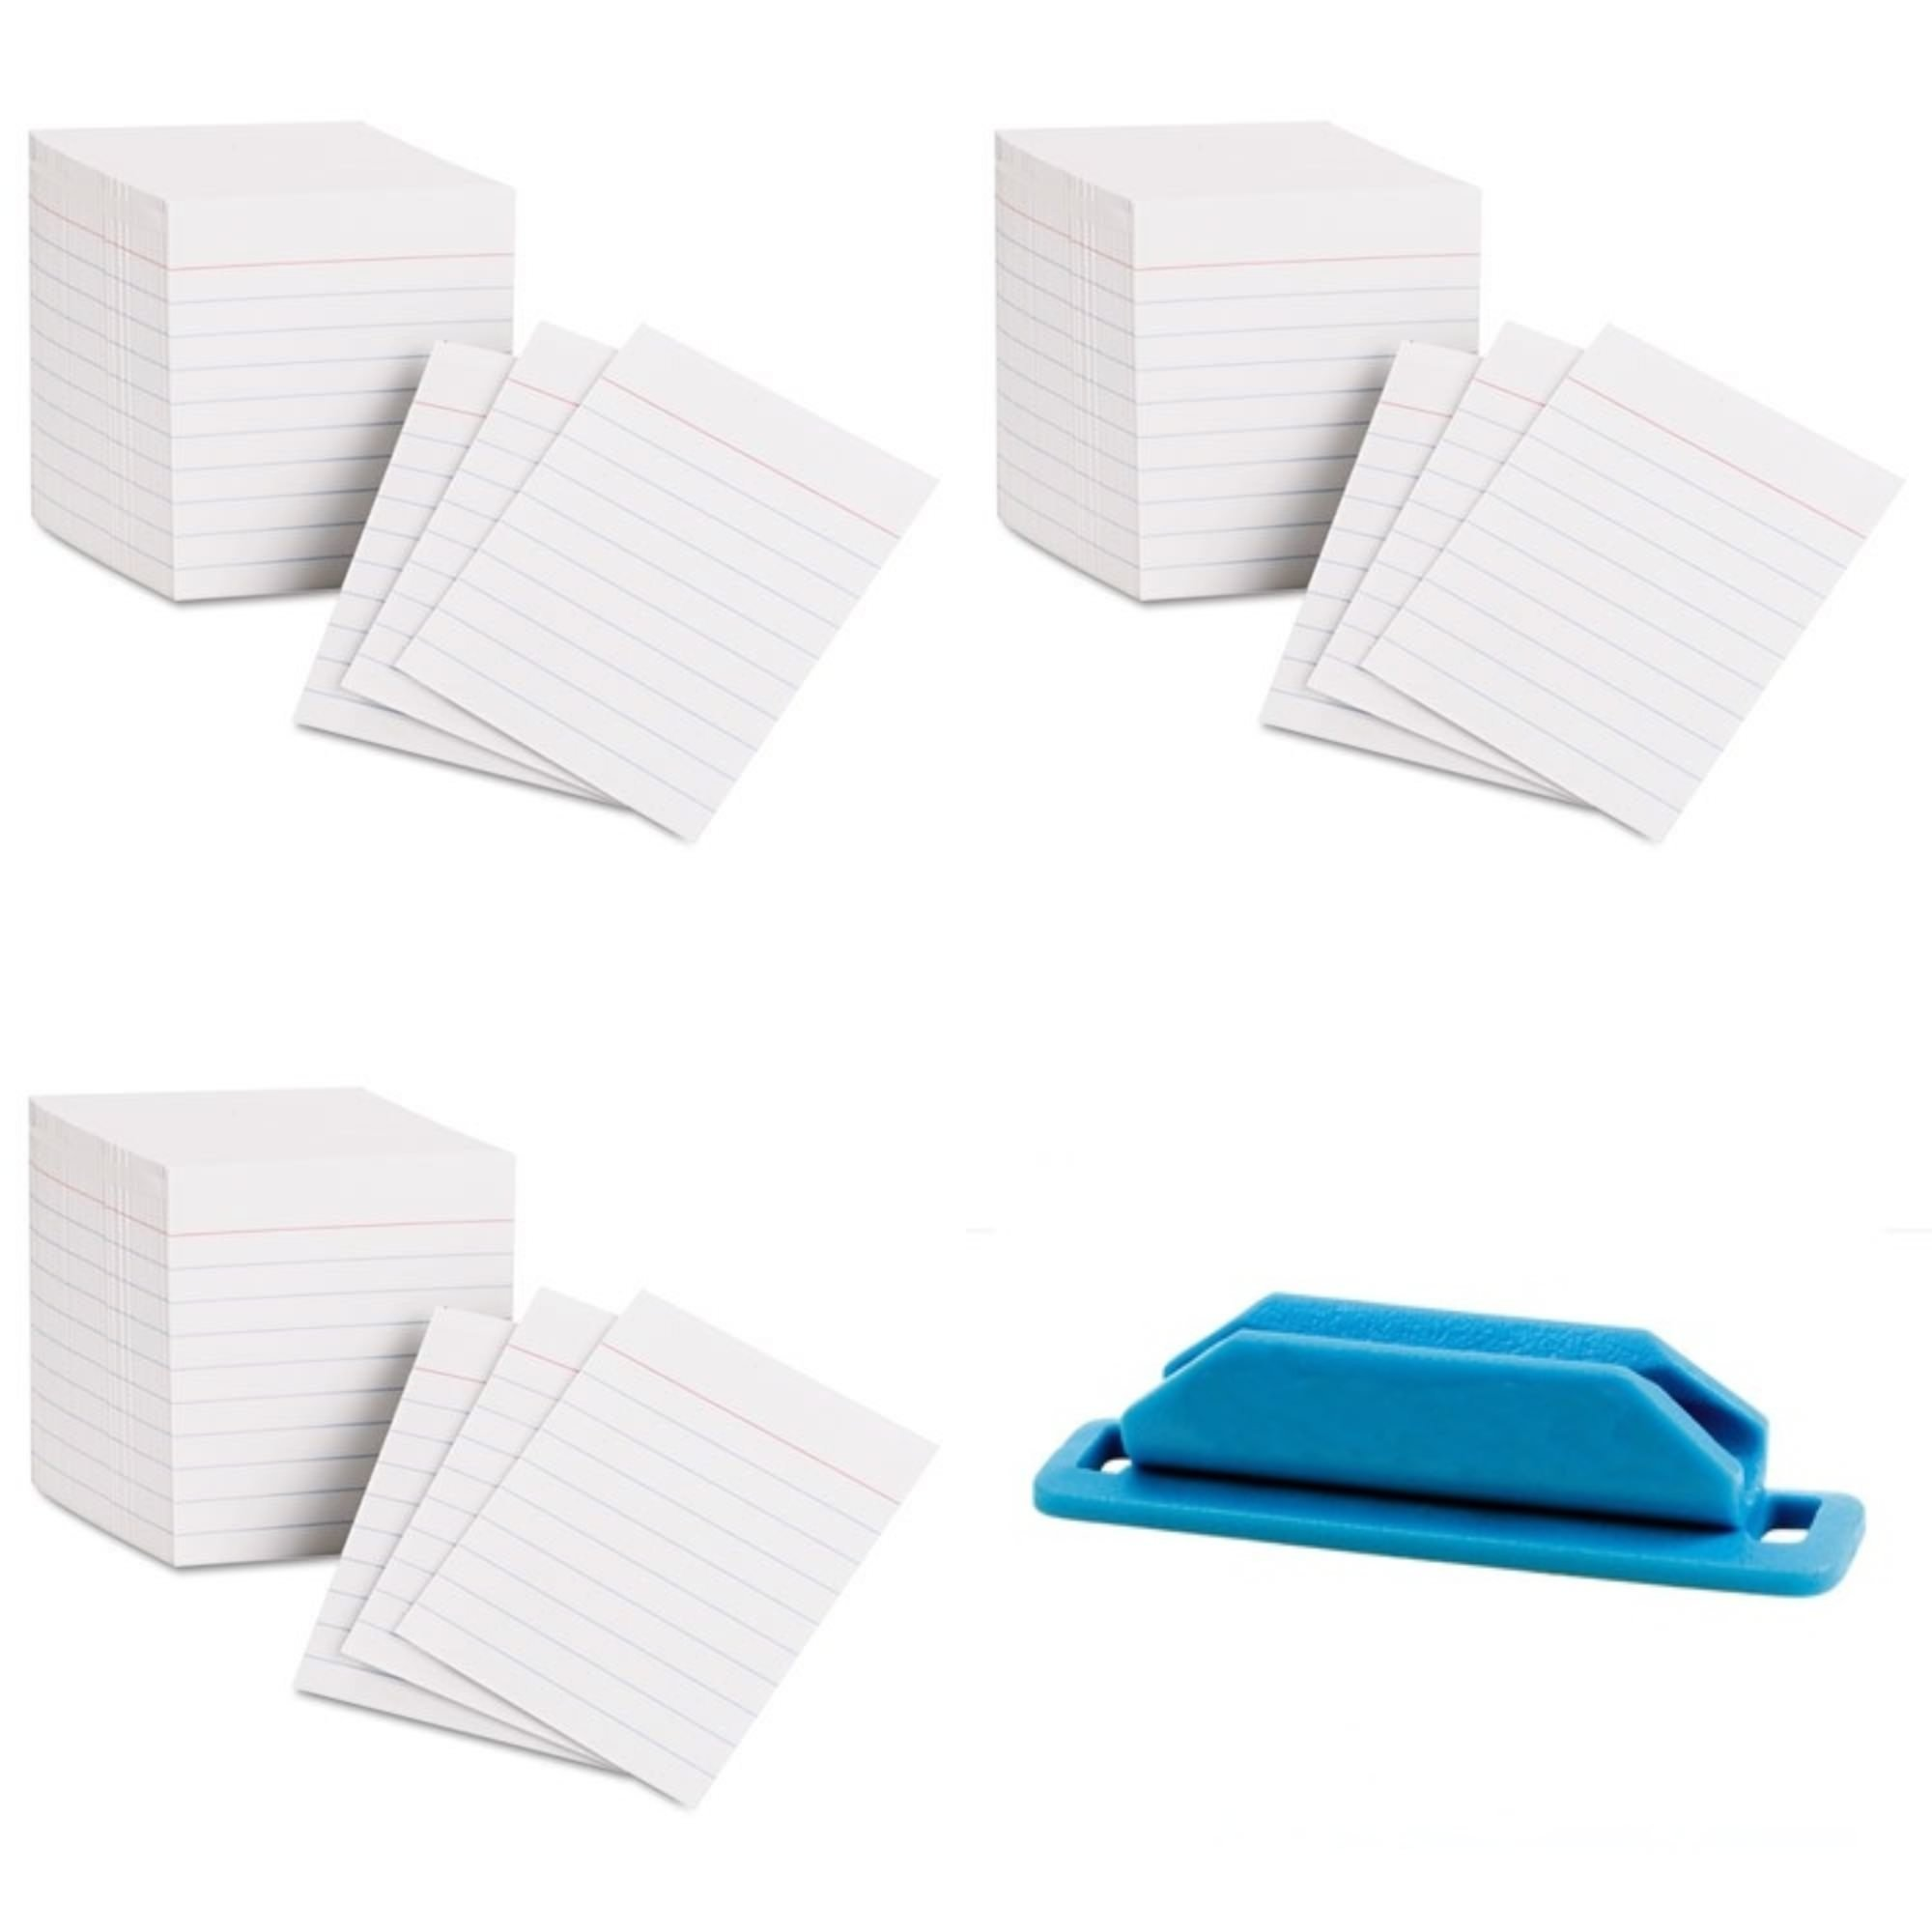 Oxford Mini Index Cards 3 Inch X 2.5 Inches 200 Cards per Package (Pack of 3) Bundle with Rubber Pen/Pencil Holder